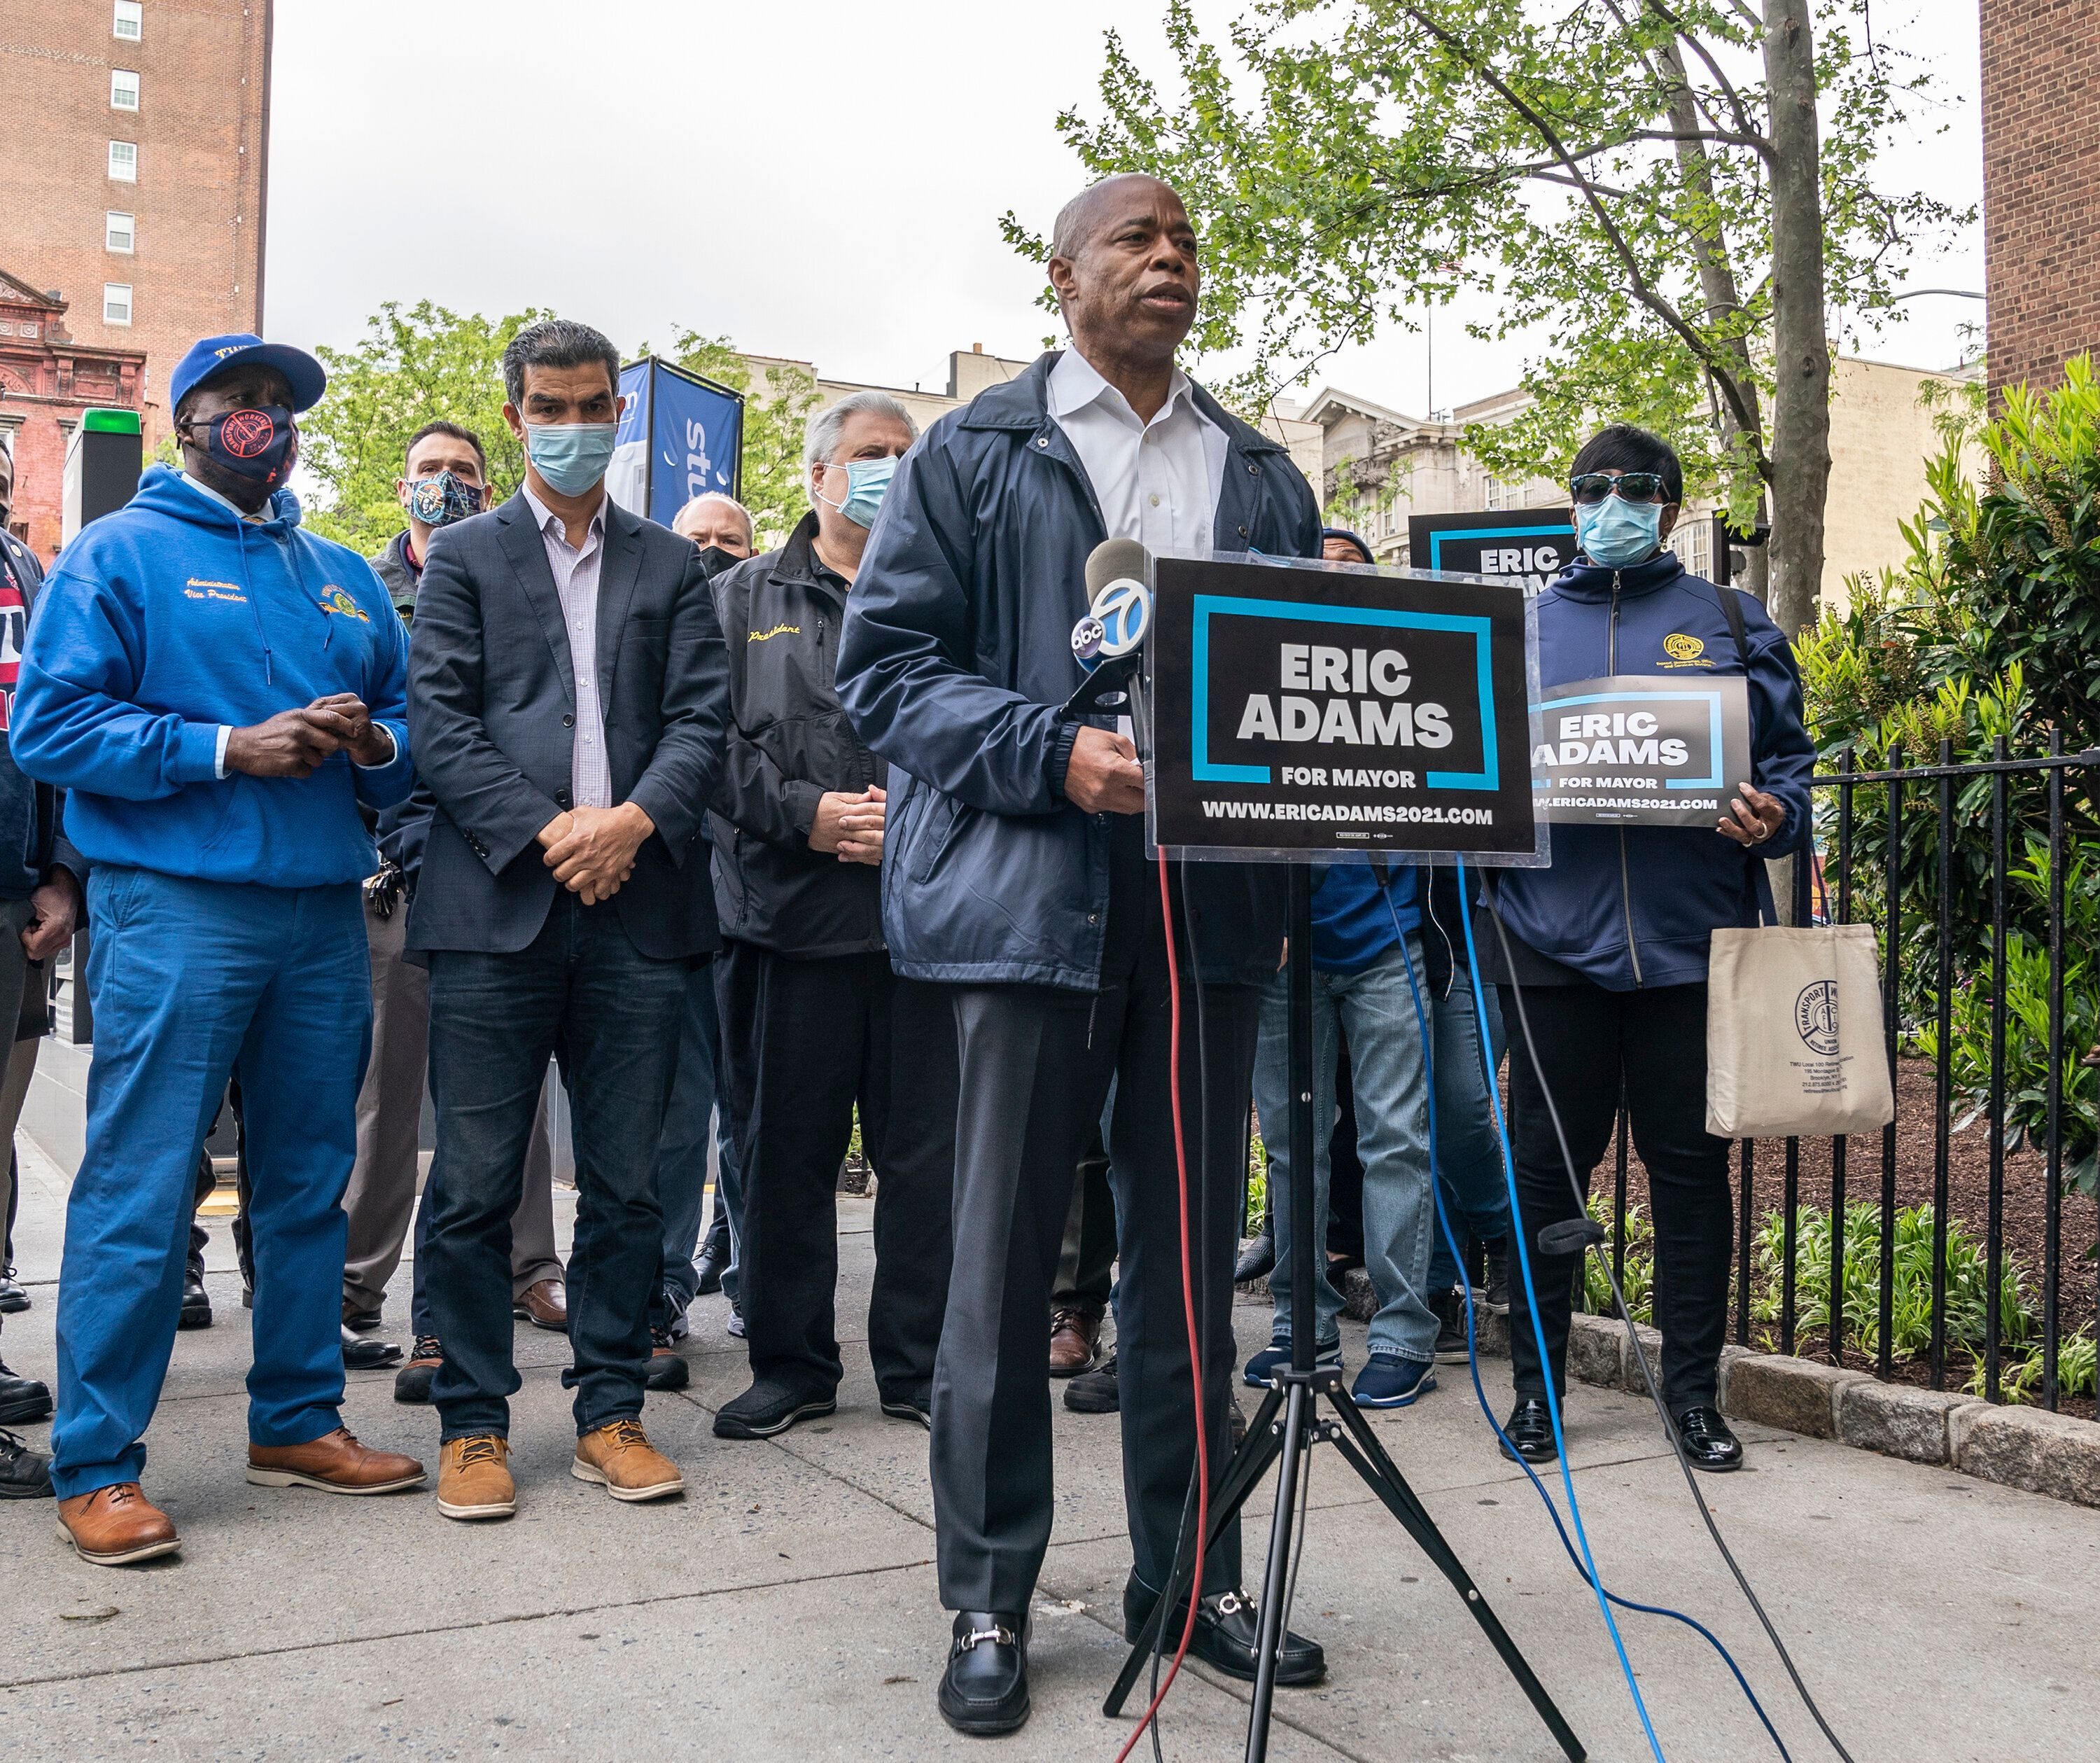 Eric Adams joins members of the Transport Workers Union to call for better policing on the subways. Adams's focus on crime an